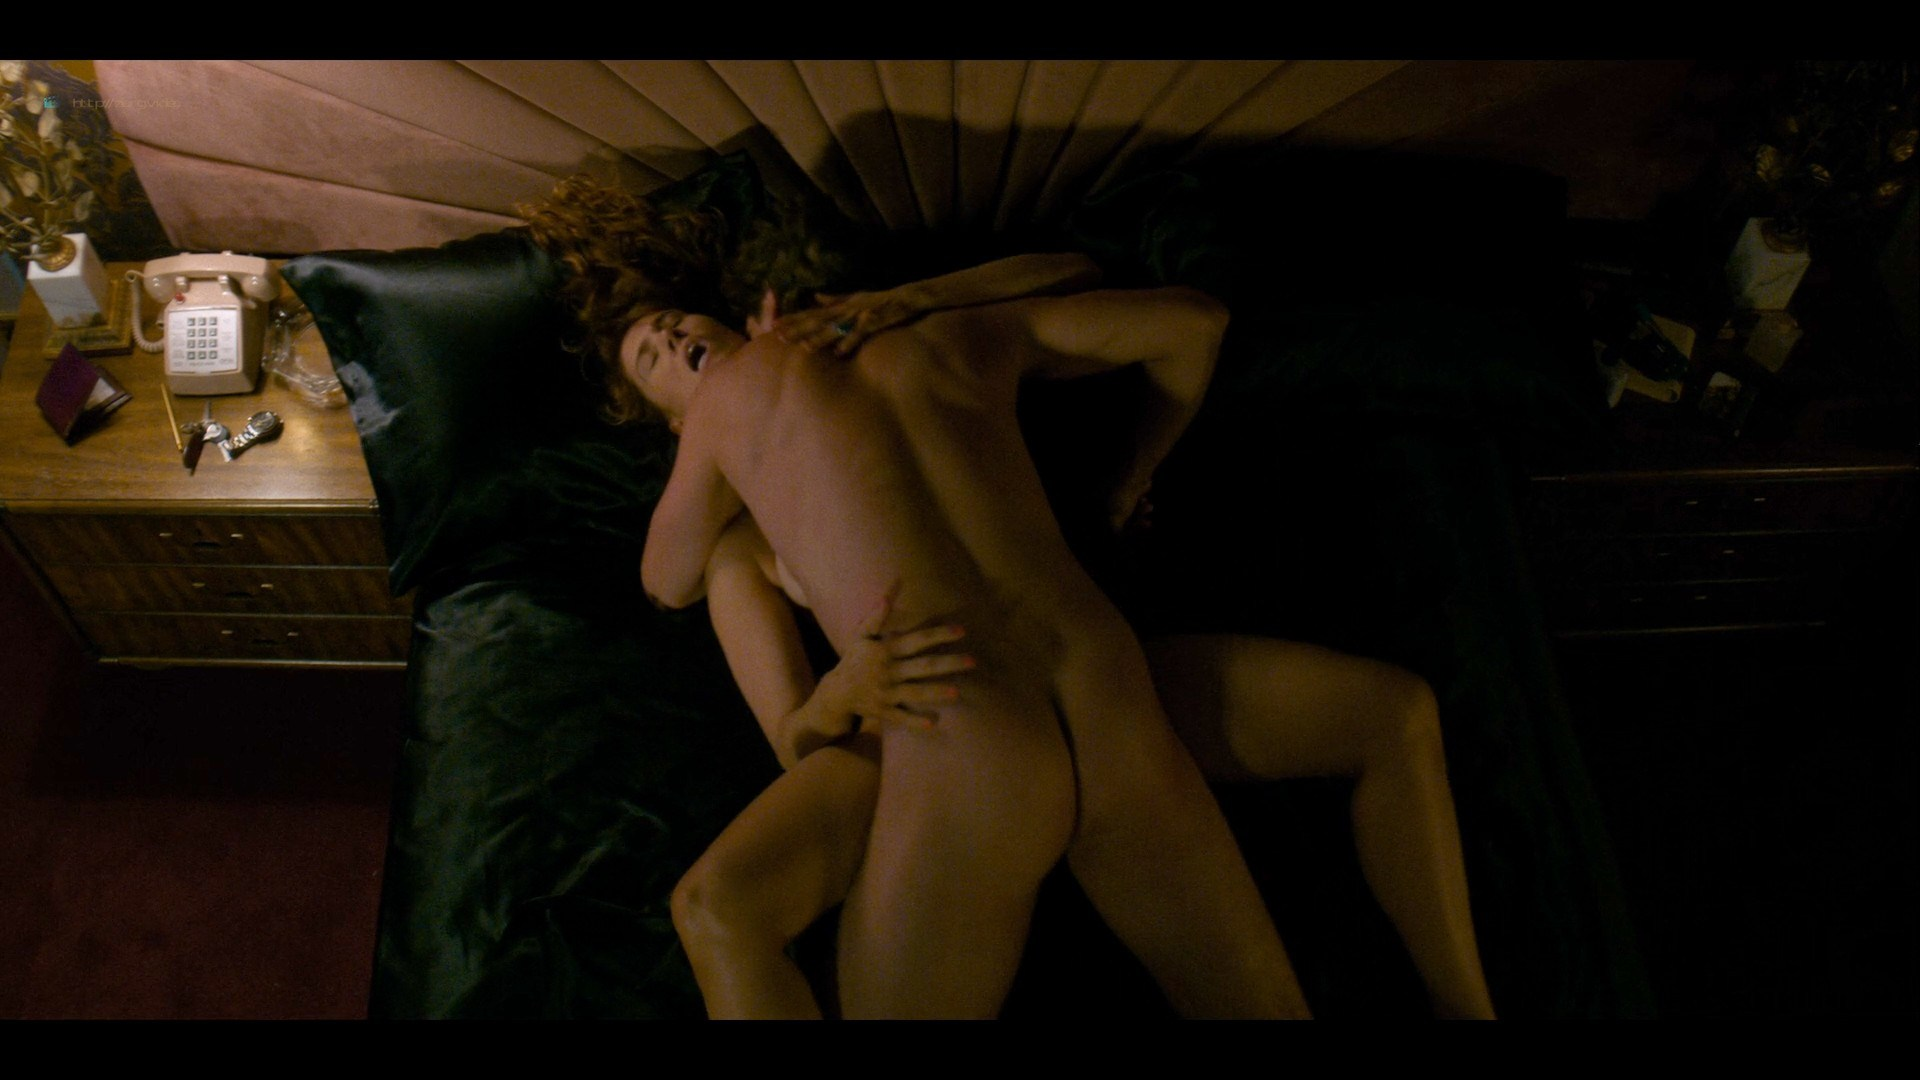 0710213425772_17_Betty-Gilpin-nude-sex-Kate-Nash-sex-others-hot-Glow-2019-S3-HD-1080p-0002.jpg